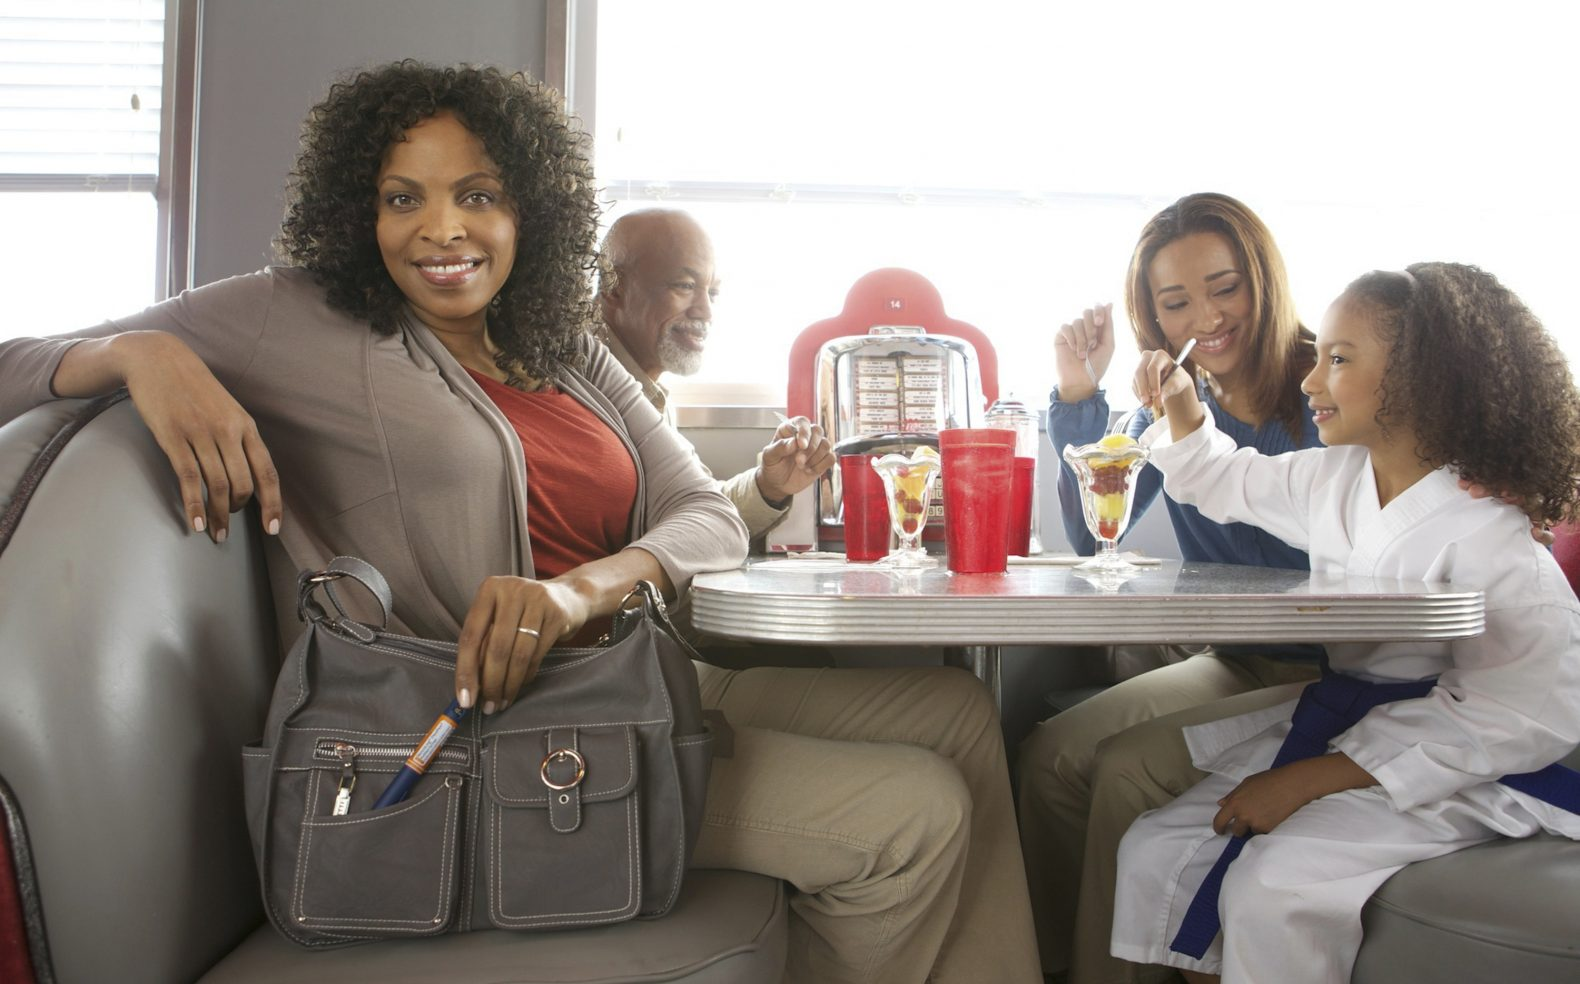 A family sharing fresh fruit cups at a diner while the mom looks at the camera showing the medical pen in her purse.